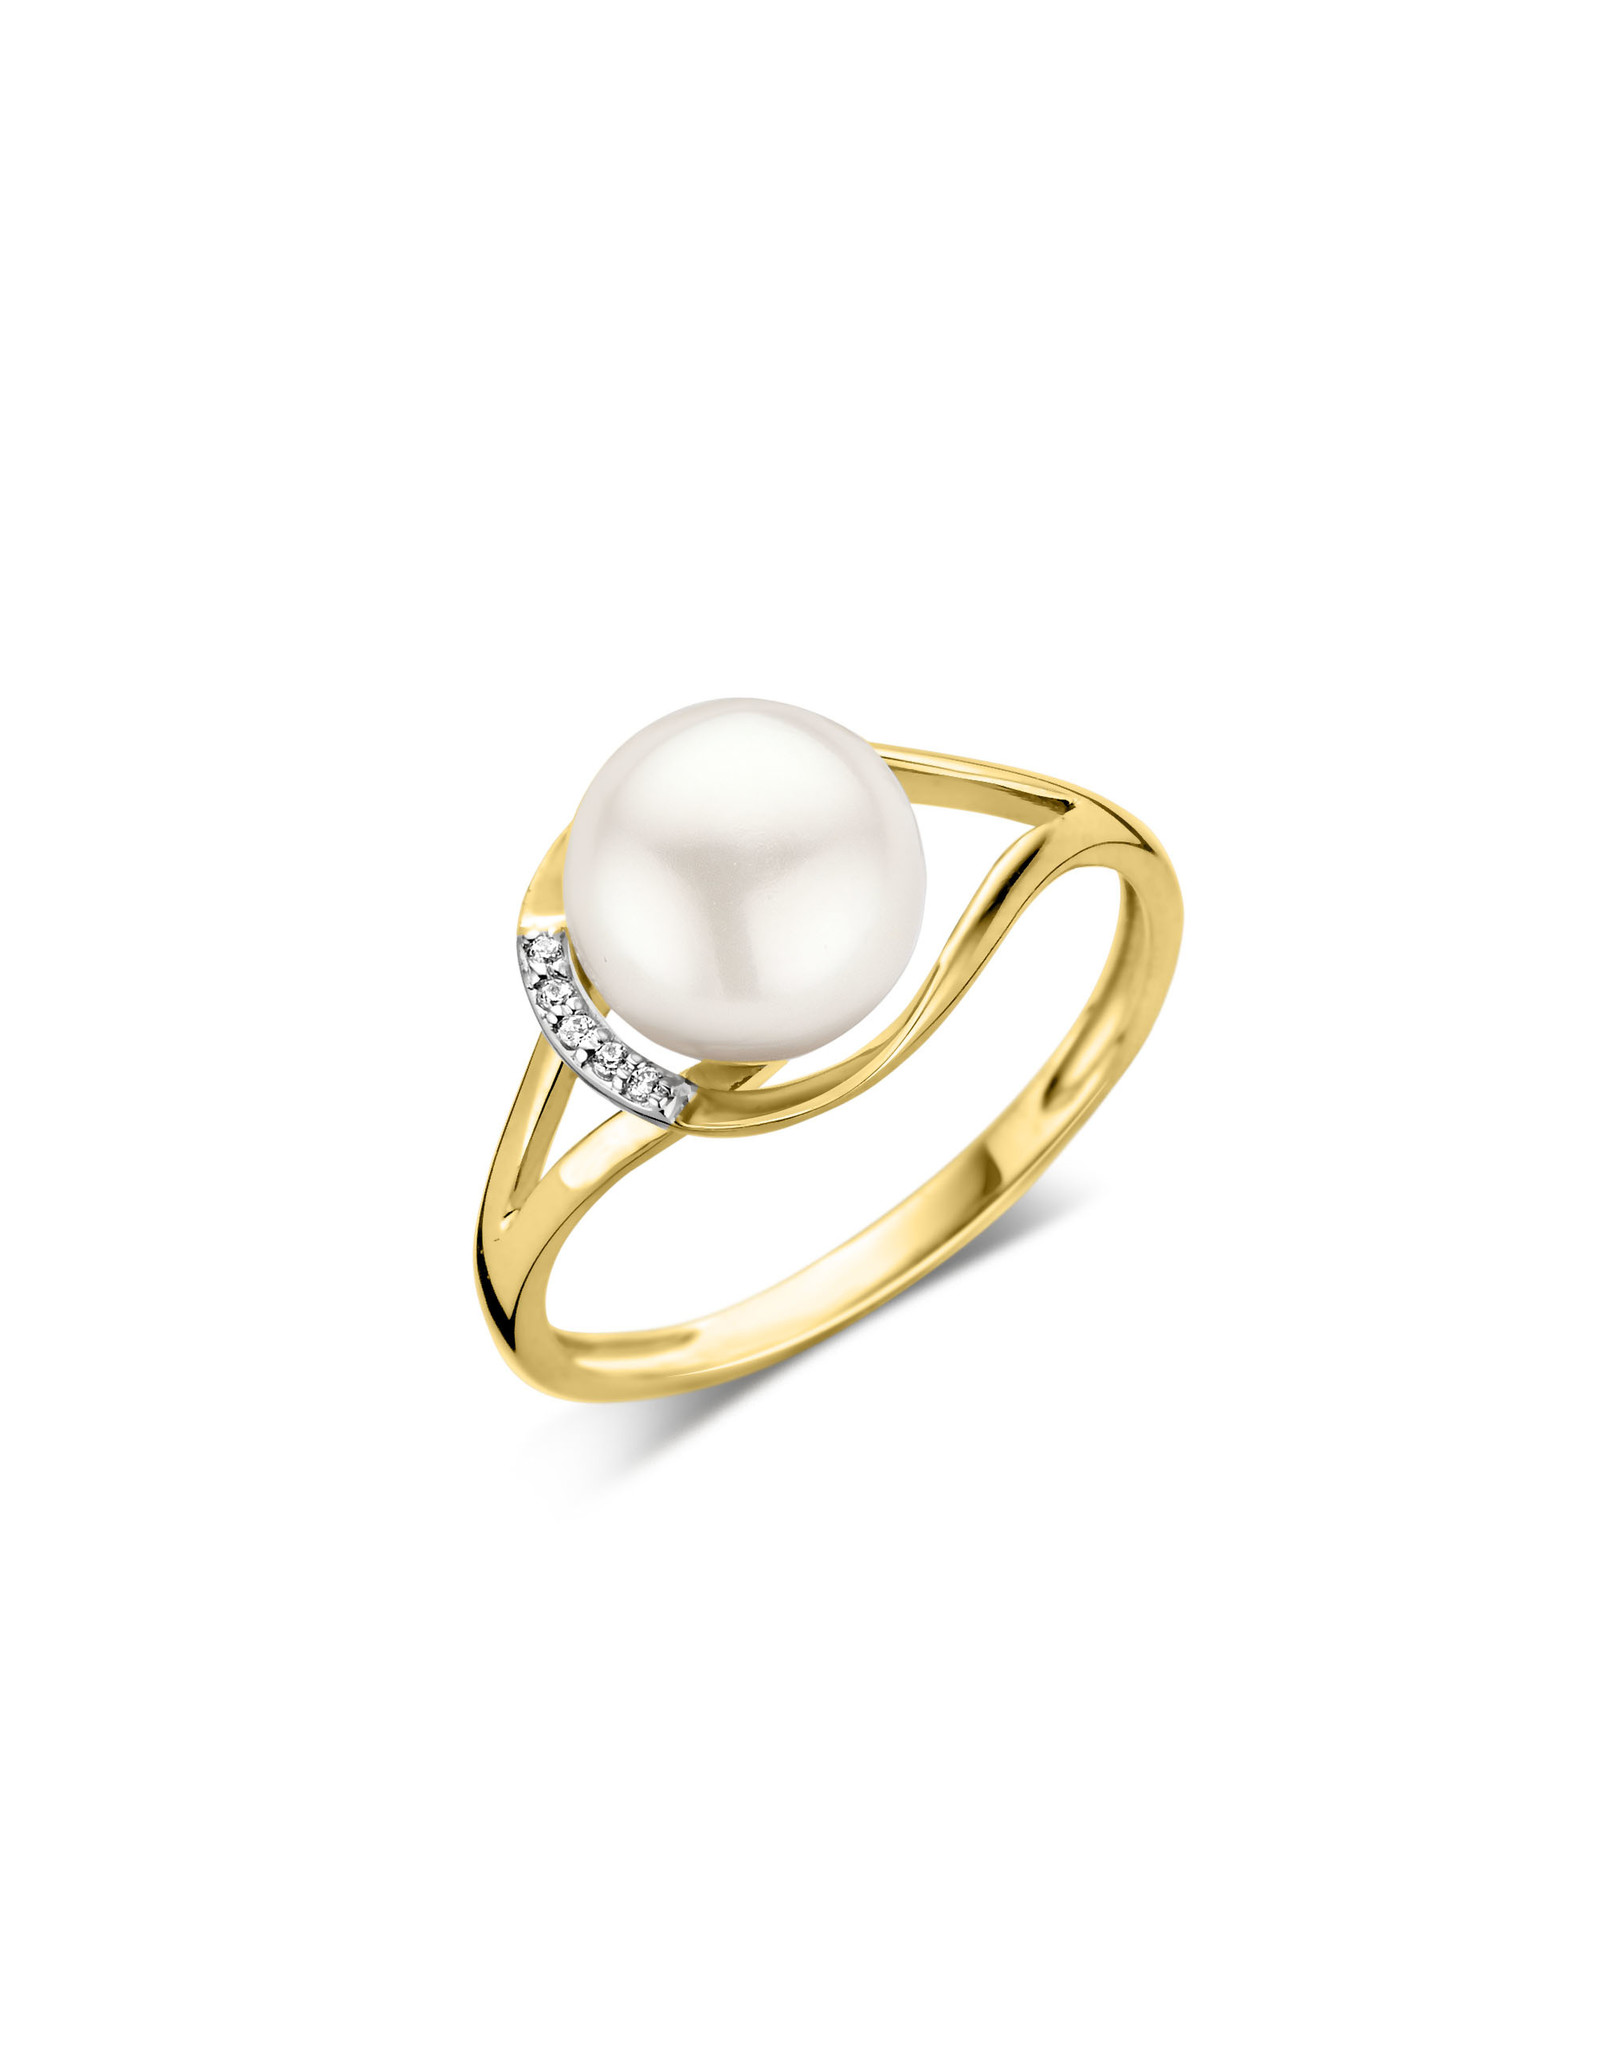 Dulci Nea Ring geel goud parel 0.02ct maat 56 DN121